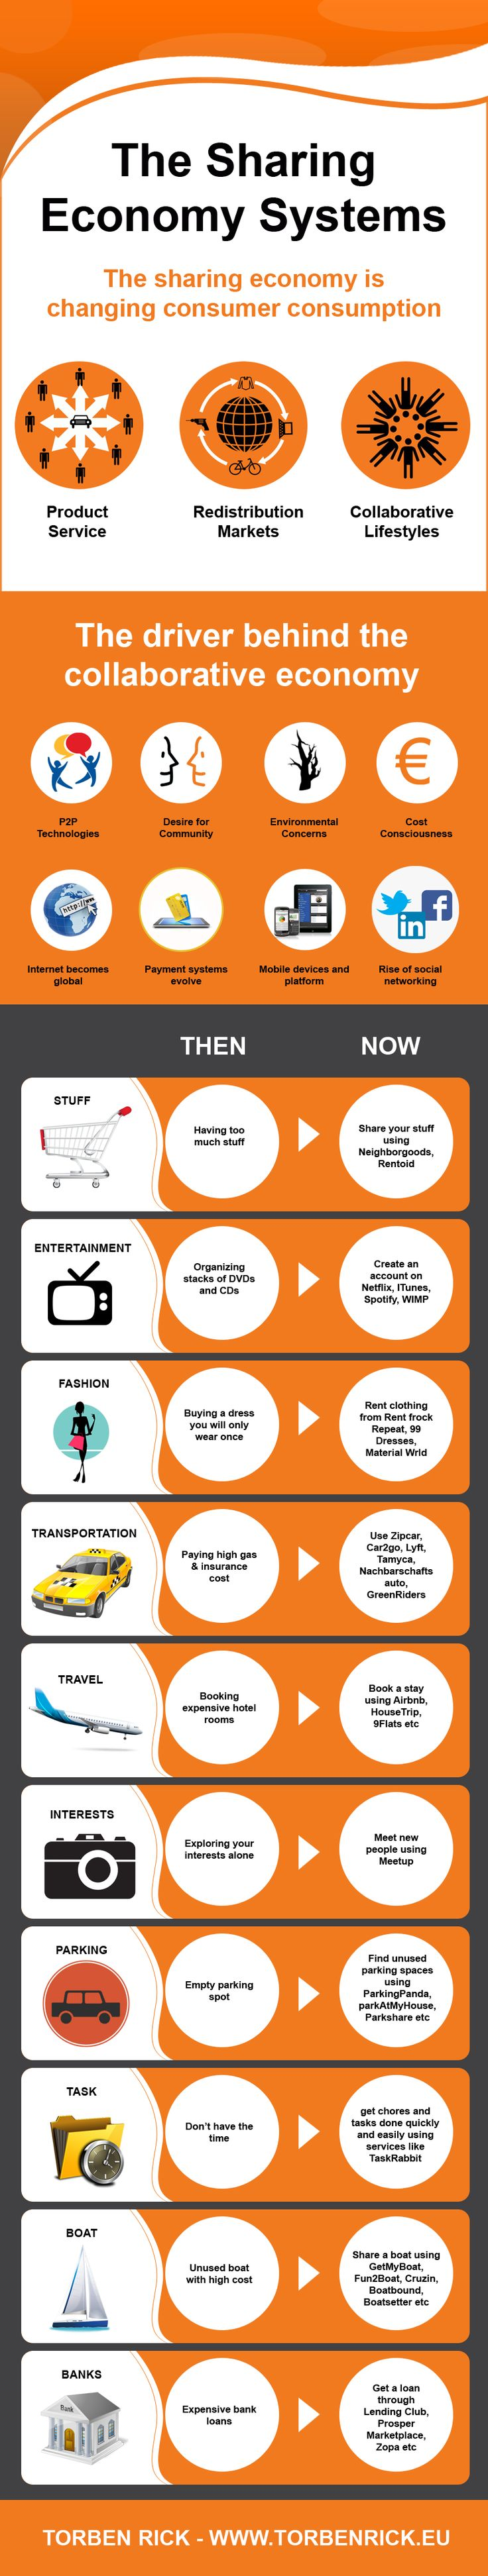 Infographic: The sharing economy impacts core business models